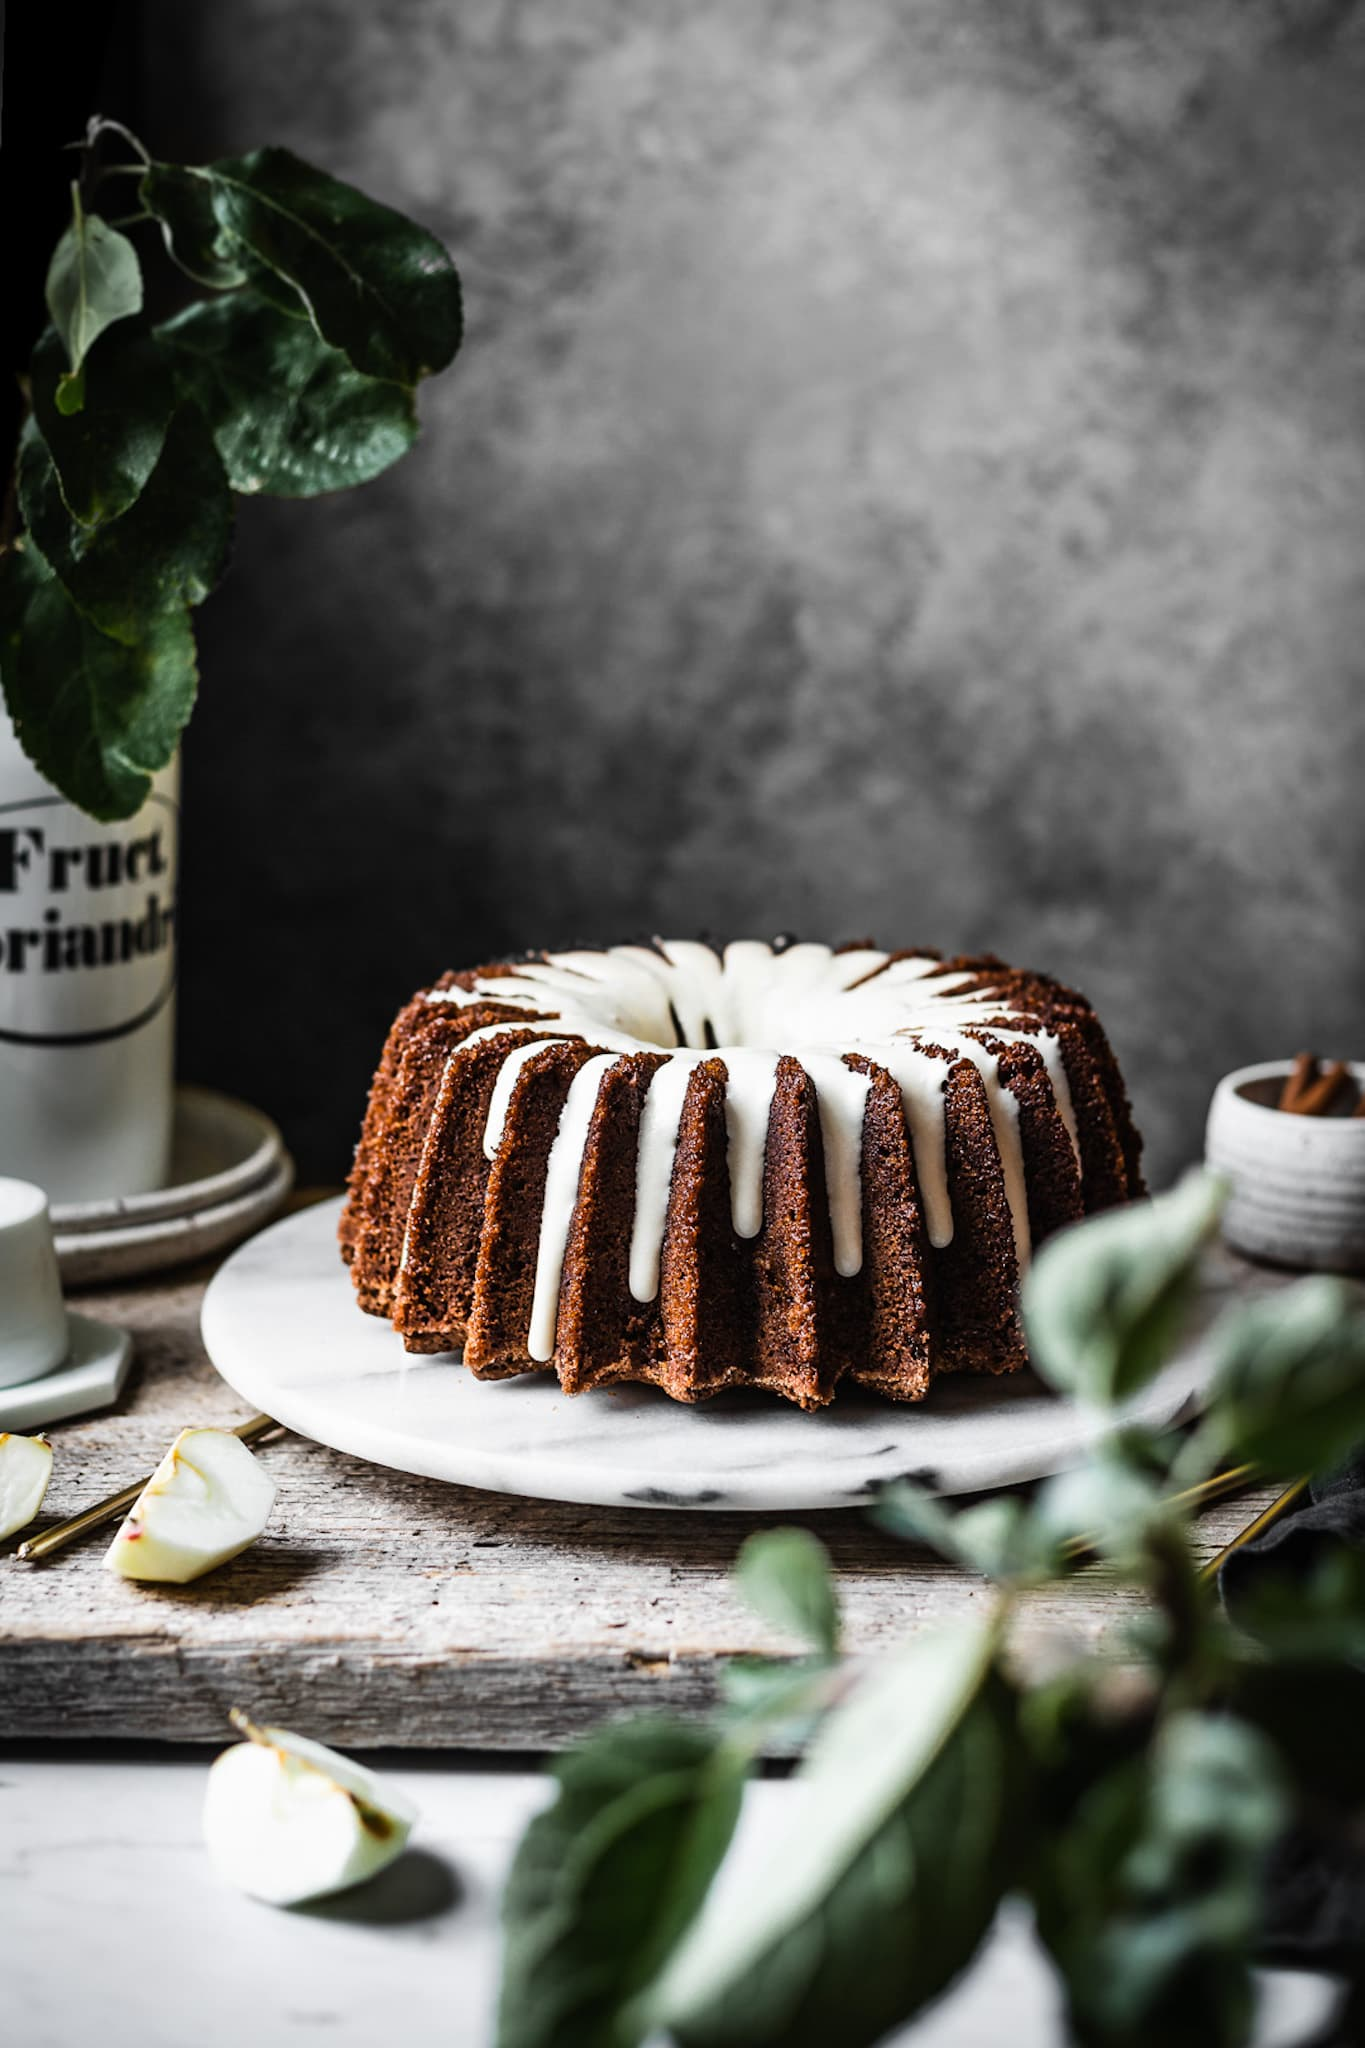 Brown bundt cake with white glaze on a marble platter with apple branches in foreground